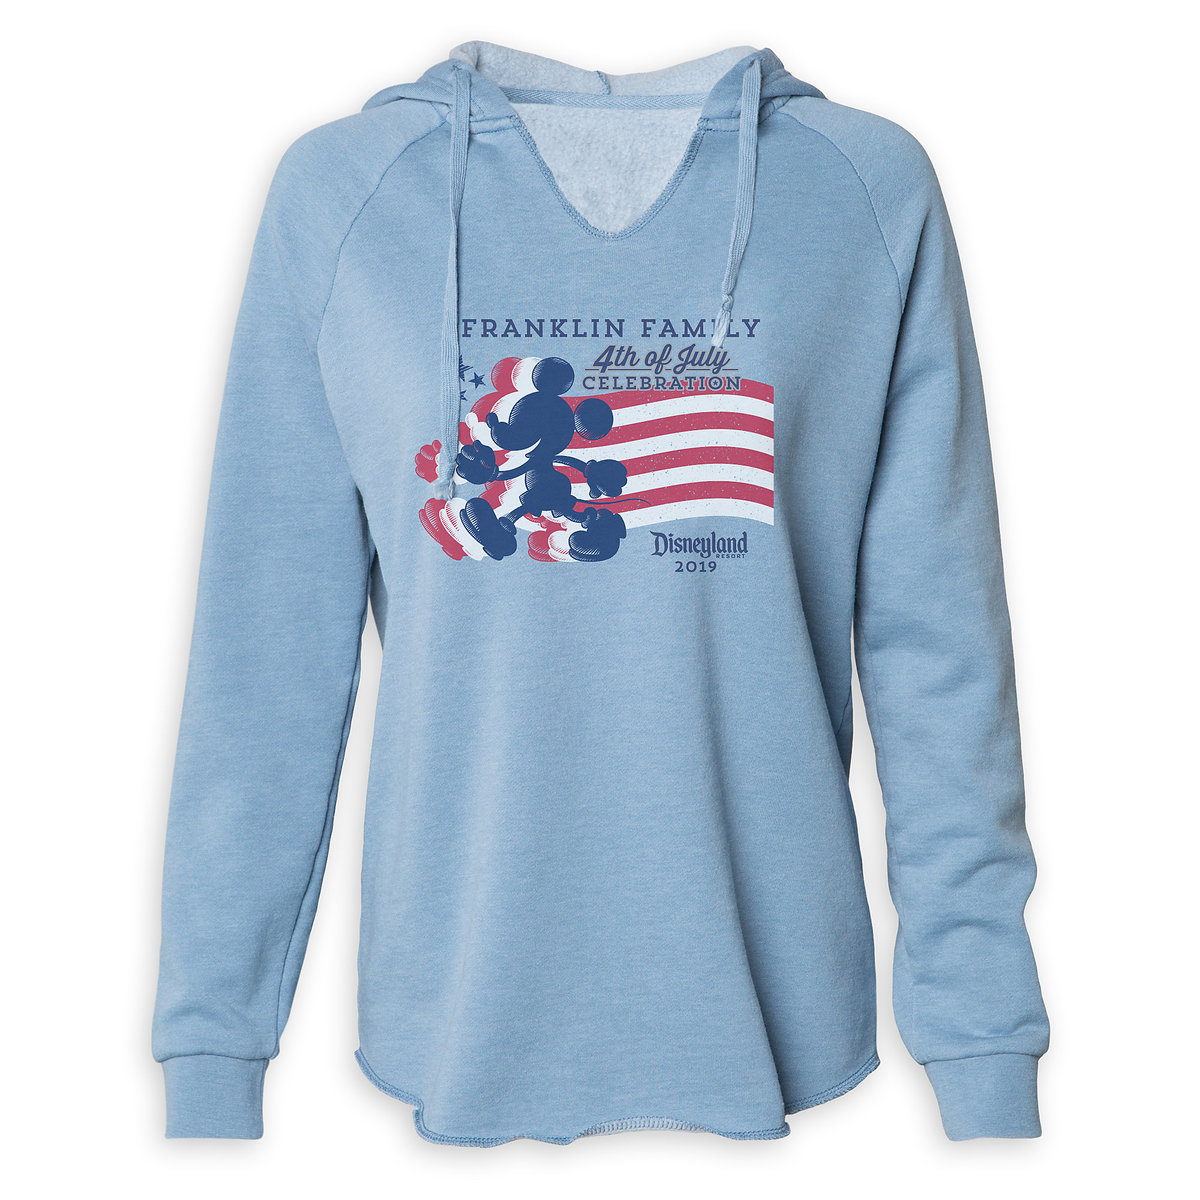 0af9425e0 Product Image of Women's Mickey Mouse Silhouette 4th of July Pullover  Hoodie - Disneyland - Customized